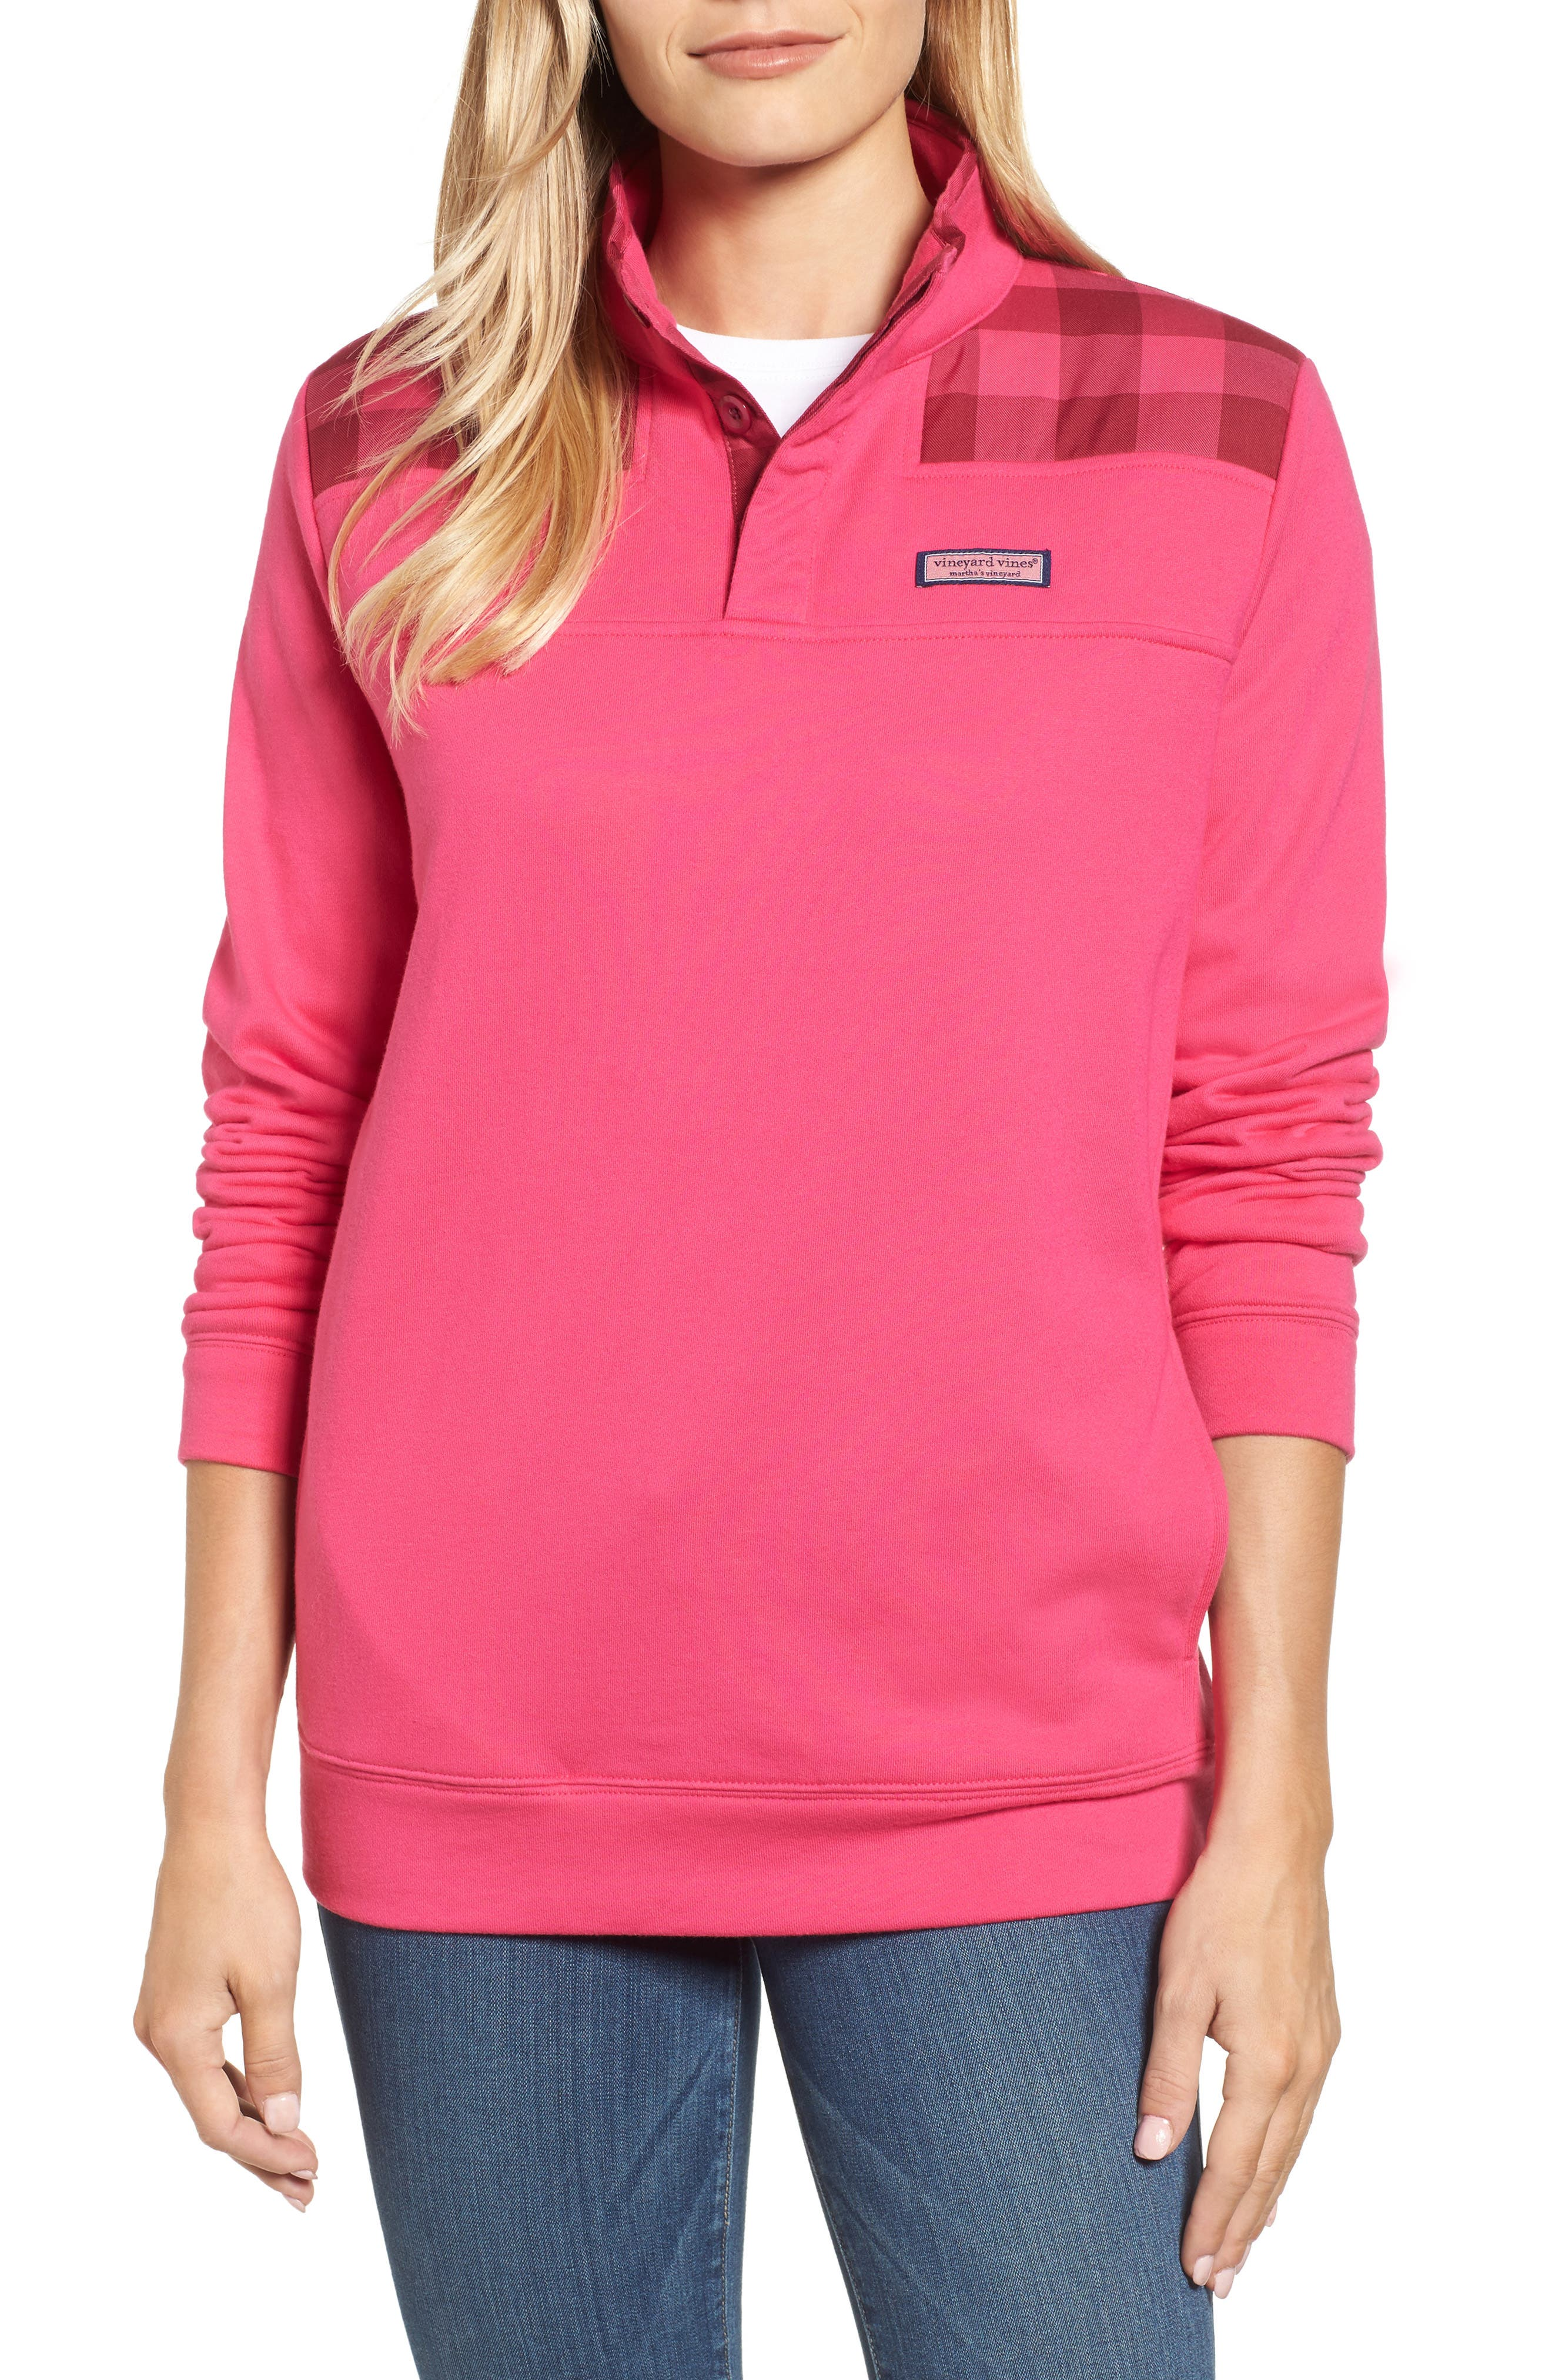 Alternate Image 1 Selected - vineyard vines Buffalo Check Classic Shep Pullover